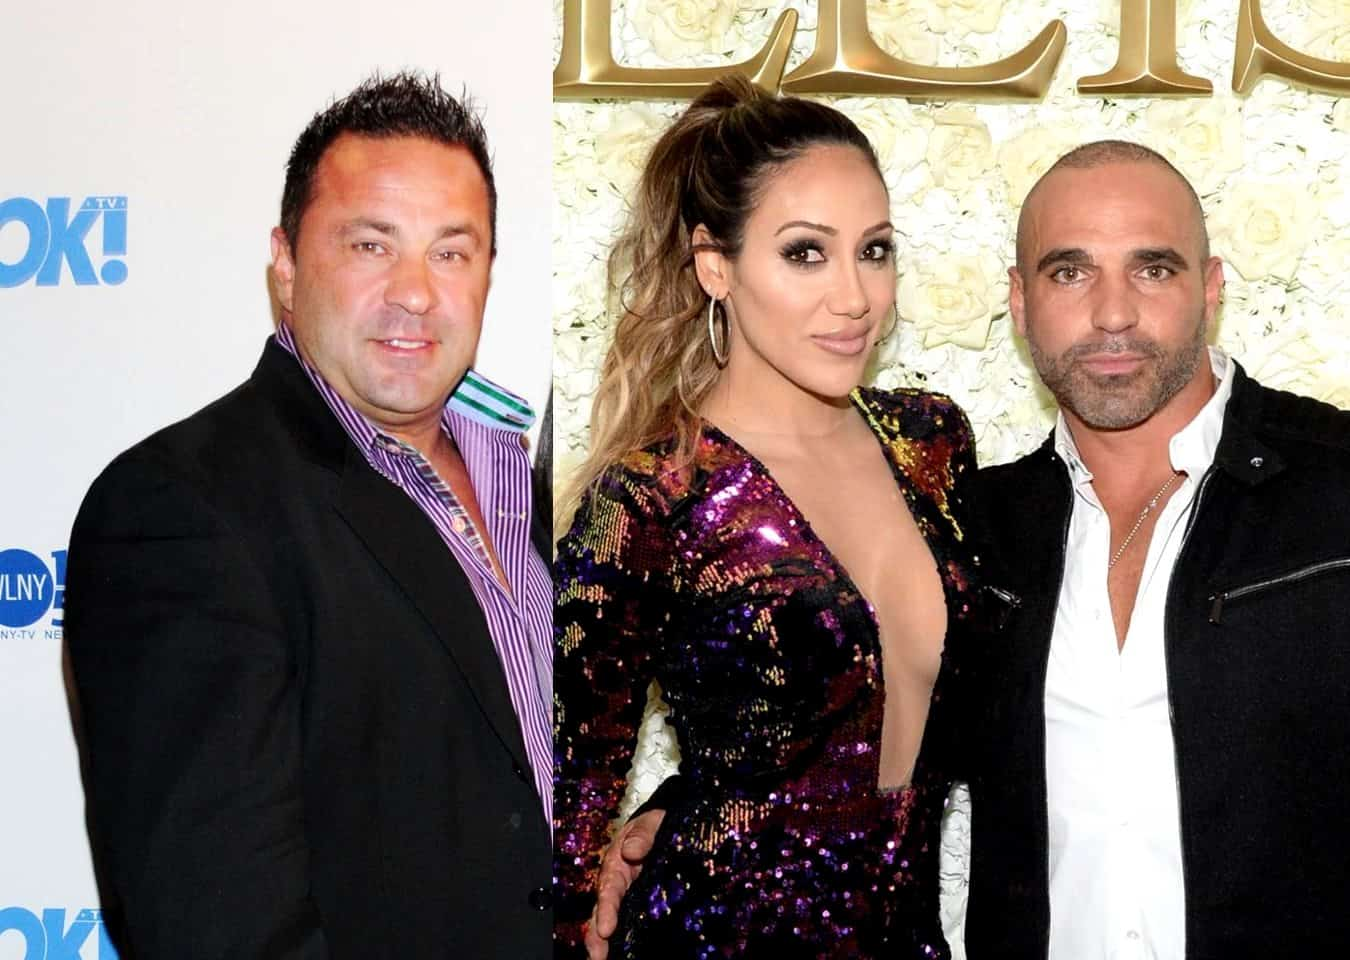 RHONJ Star Joe Giudice Alleges Joe Gorga Stole His Dad's Money, Claims Melissa Gorga Was Only Supportive of the Family When Cameras Were Rolling